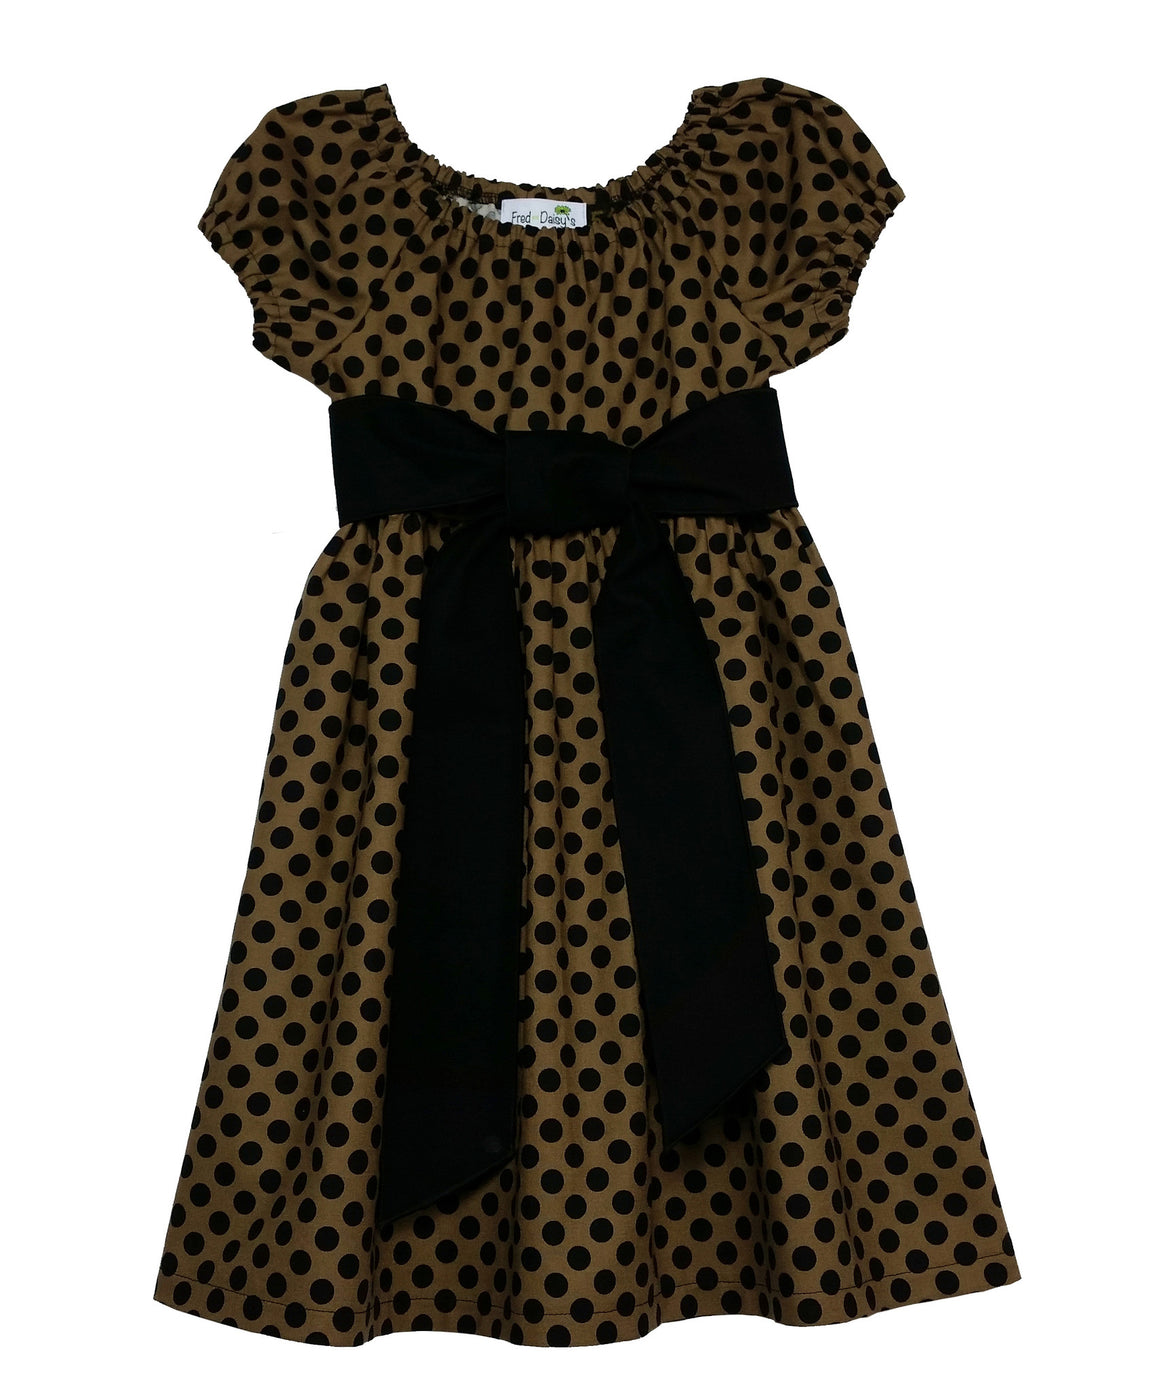 Ricky Raccoon - Lots of Dots Dress